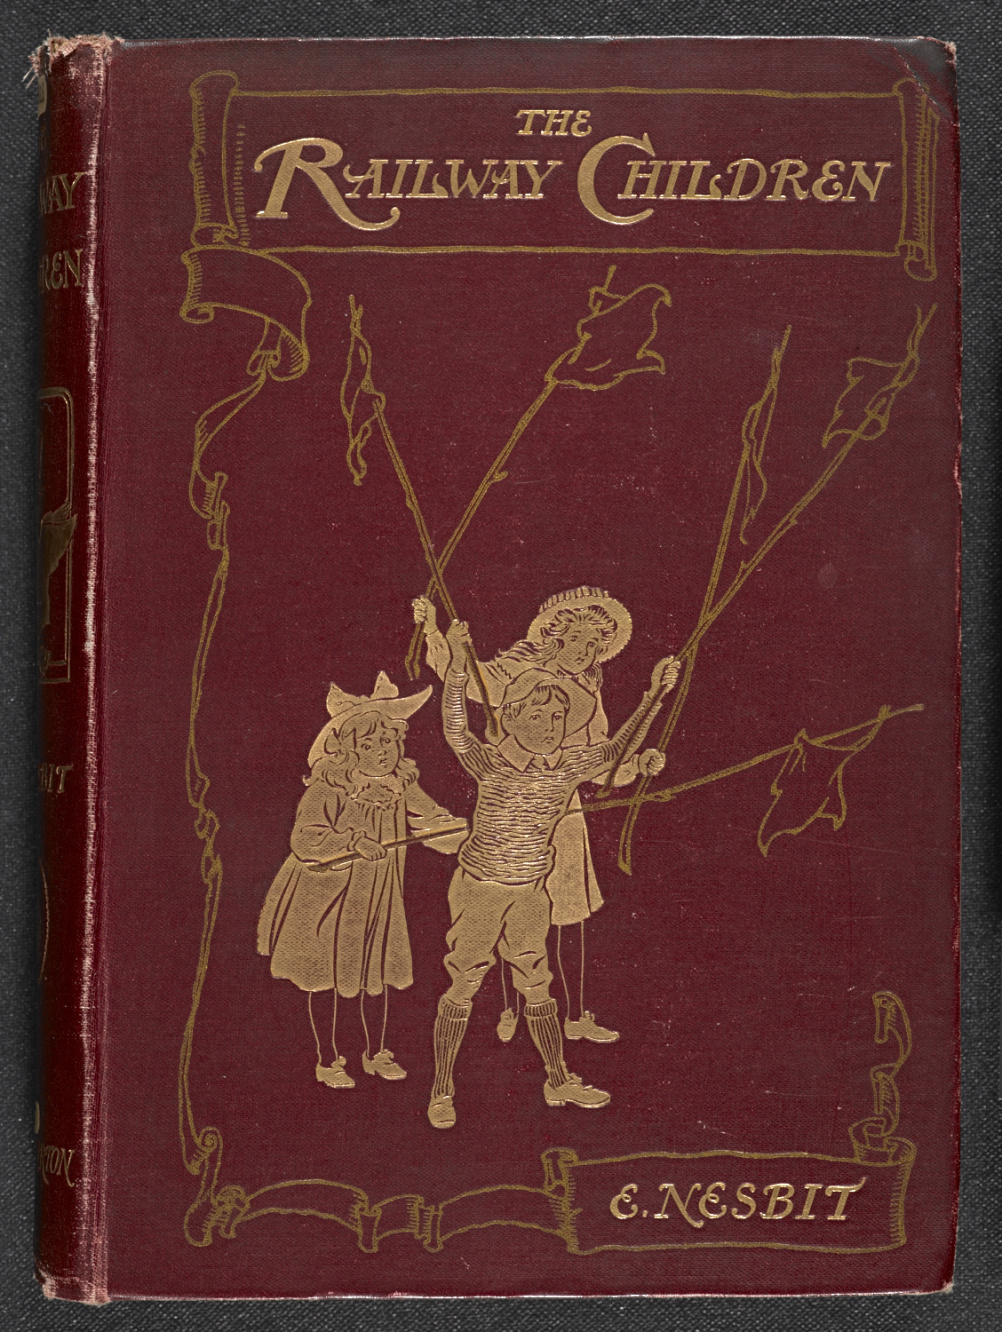 The Railway Children, first edition. Illustrations by C E Brack